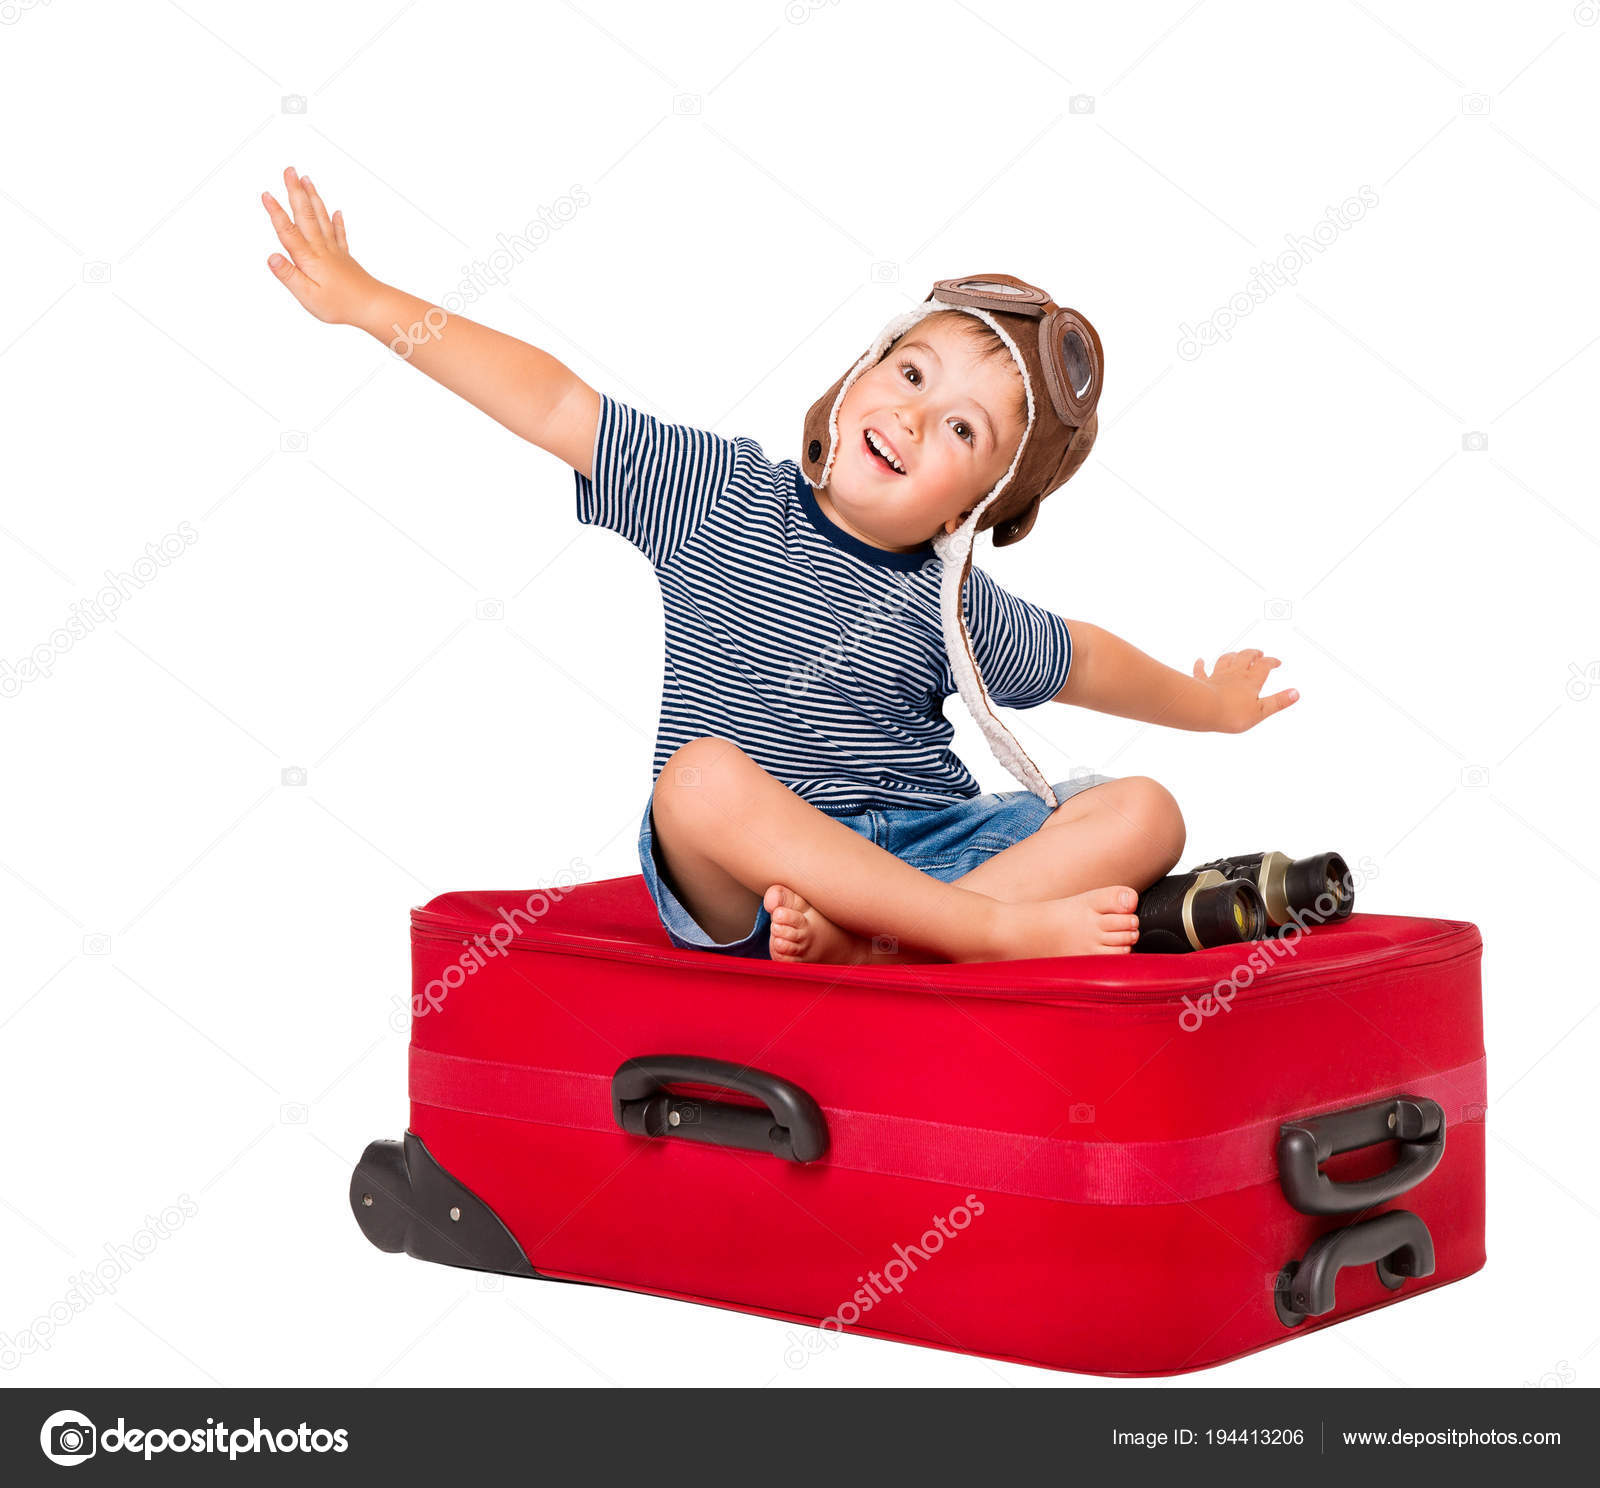 Child Flying on Travel Suitcase 06a8e2dffe5